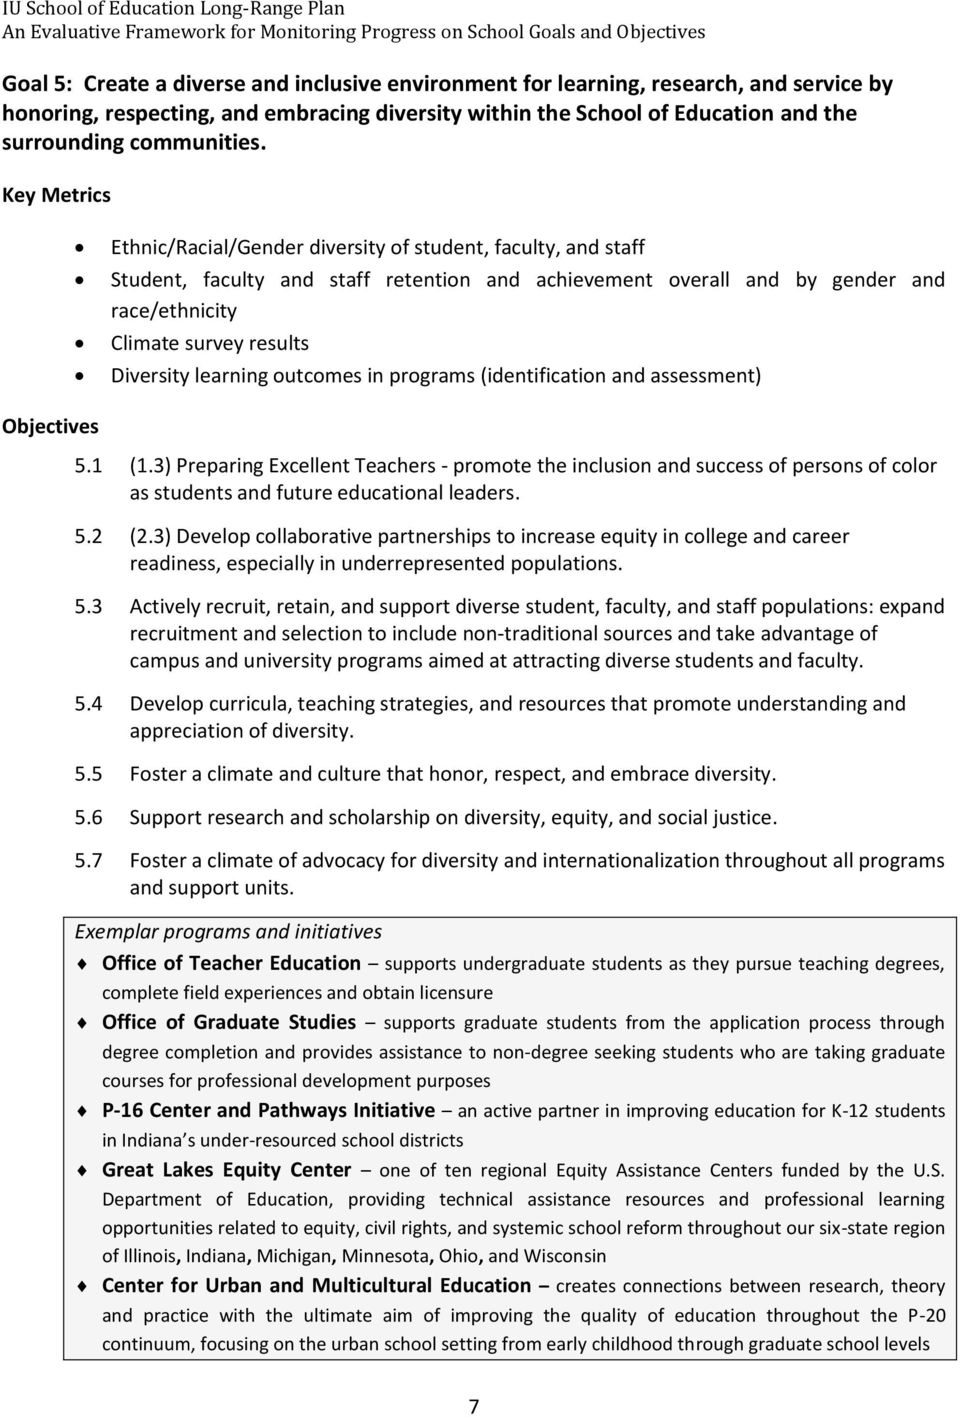 Key Metrics Ethnic/Racial/Gender diversity of student, faculty, and staff Student, faculty and staff retention and achievement overall and by gender and race/ethnicity Climate survey results